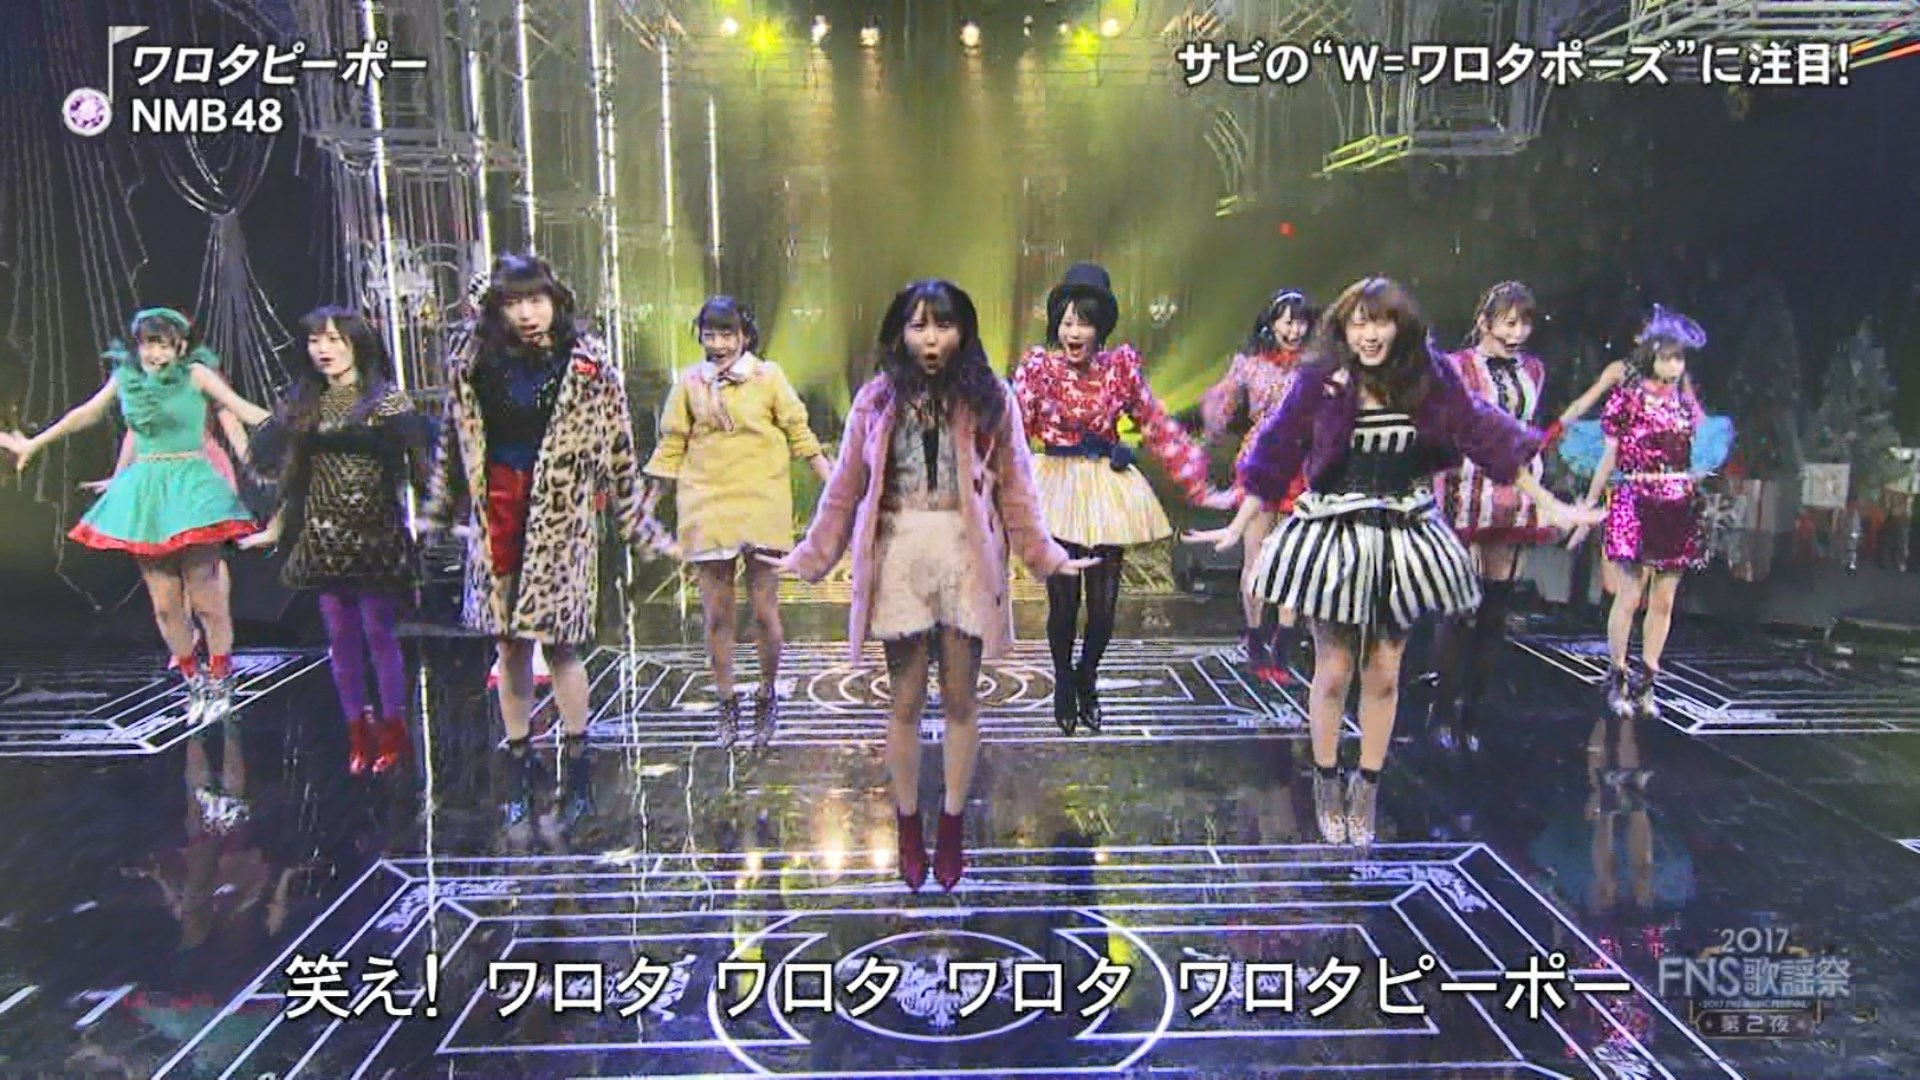 2017FNS歌謡祭第2夜・NMB48ワロタピーポーキャプ-056